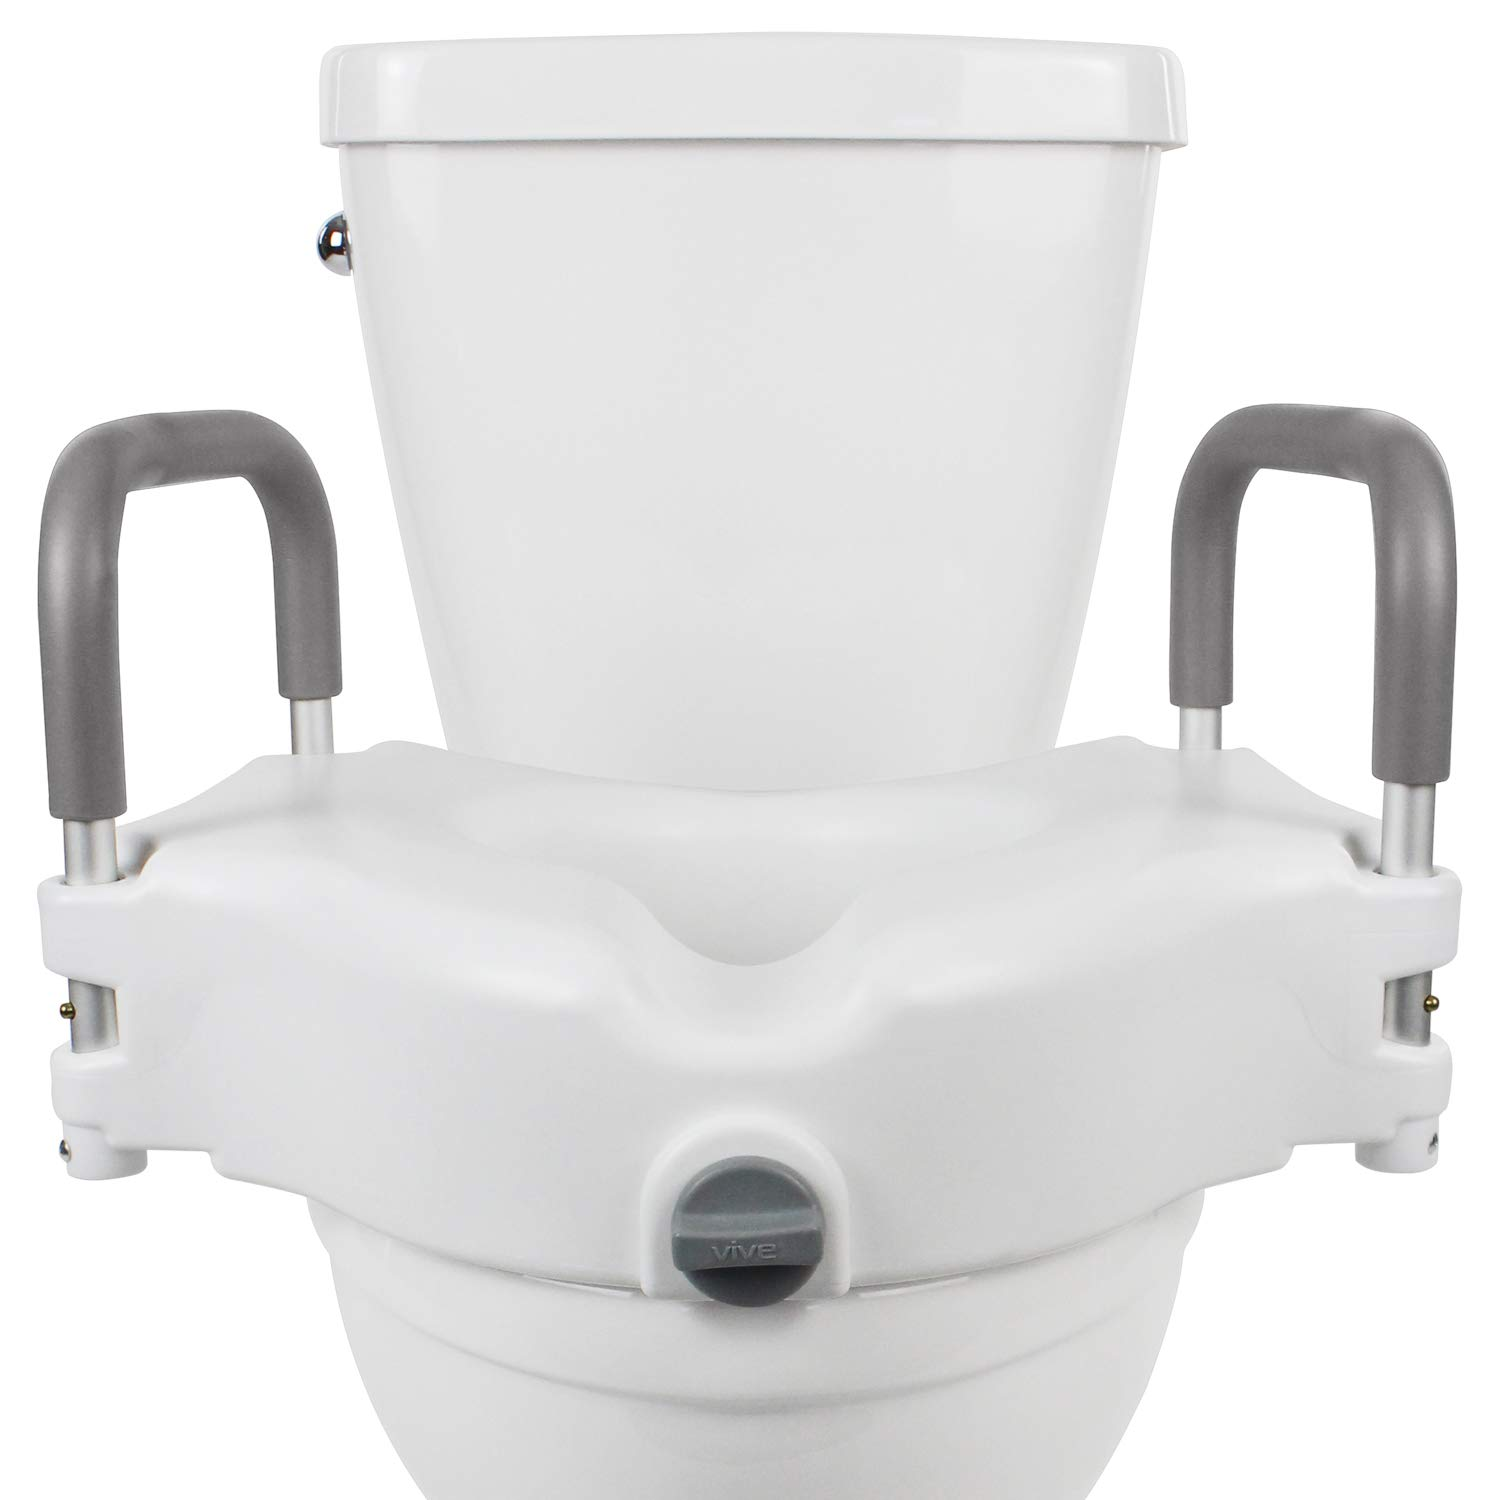 Vive Raised Toilet Seat - 5'' Portable, Elevated Riser with Padded Handles - Elongated and Standard Fit Commode Lifter - Bathroom Safety Extender Assists Disabled, Elderly, Seniors, Handicapped by Vive